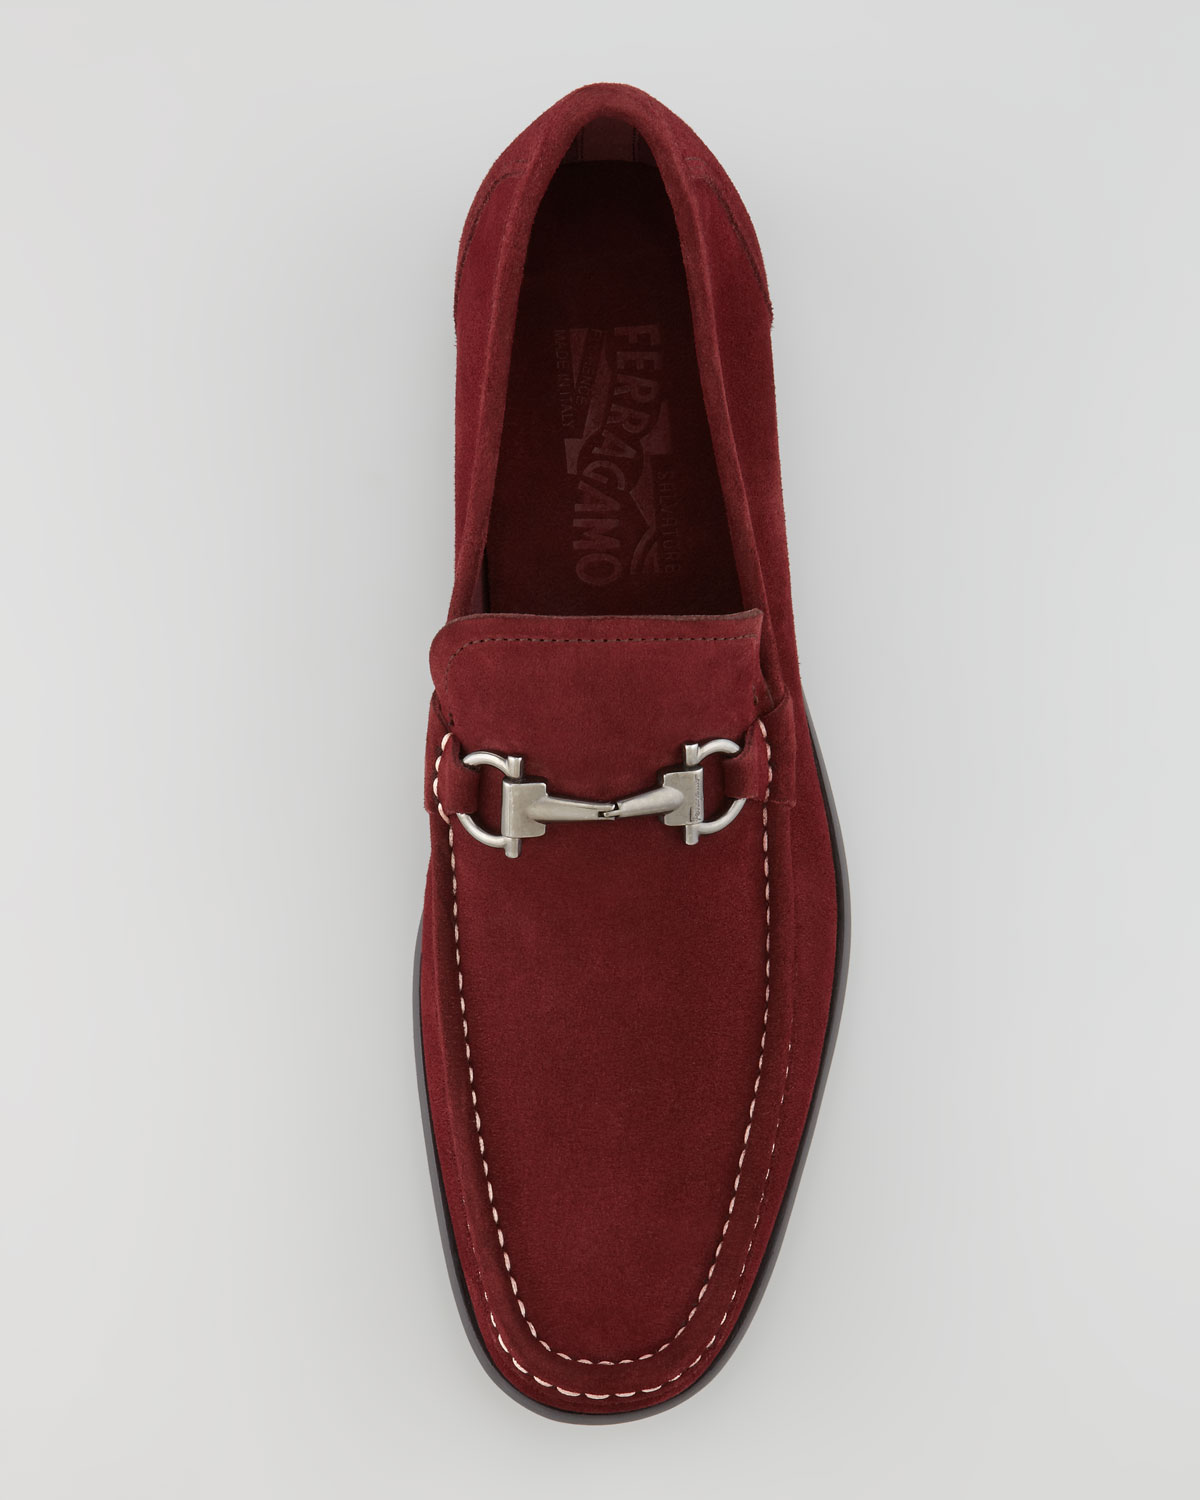 Free shipping & free returns on Magnanni shoes at Neiman Marcus Last Call. Shop from an impressive selection of Magnanni suede shoes at layoffider.ml